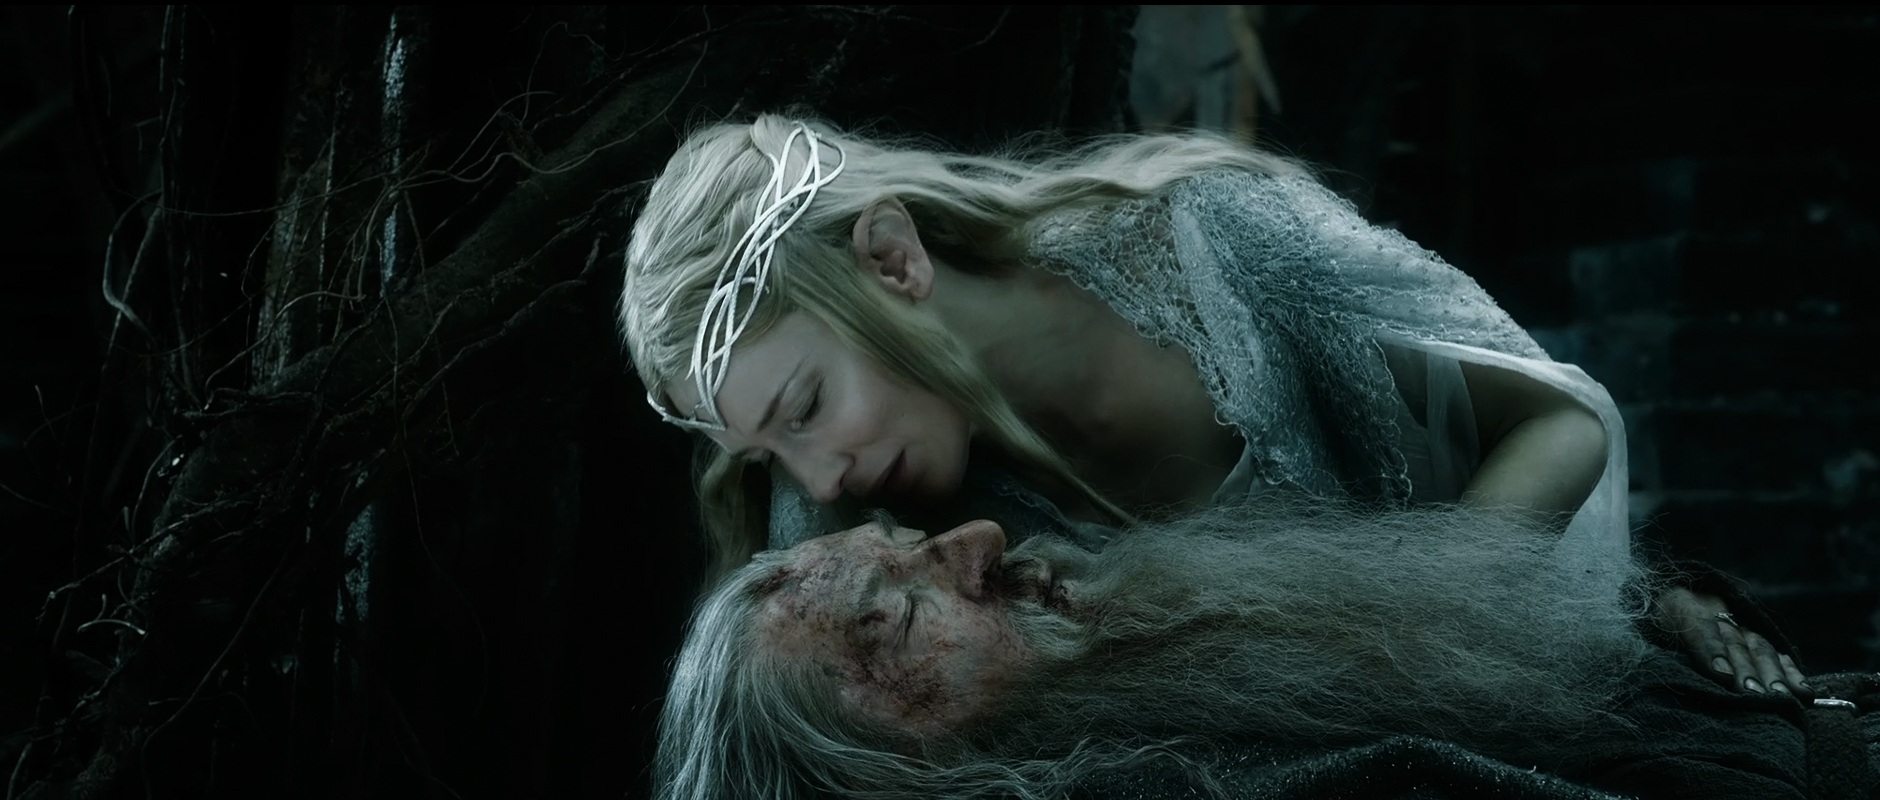 Hero image for The Hobbit: The Battle of the Five Armies